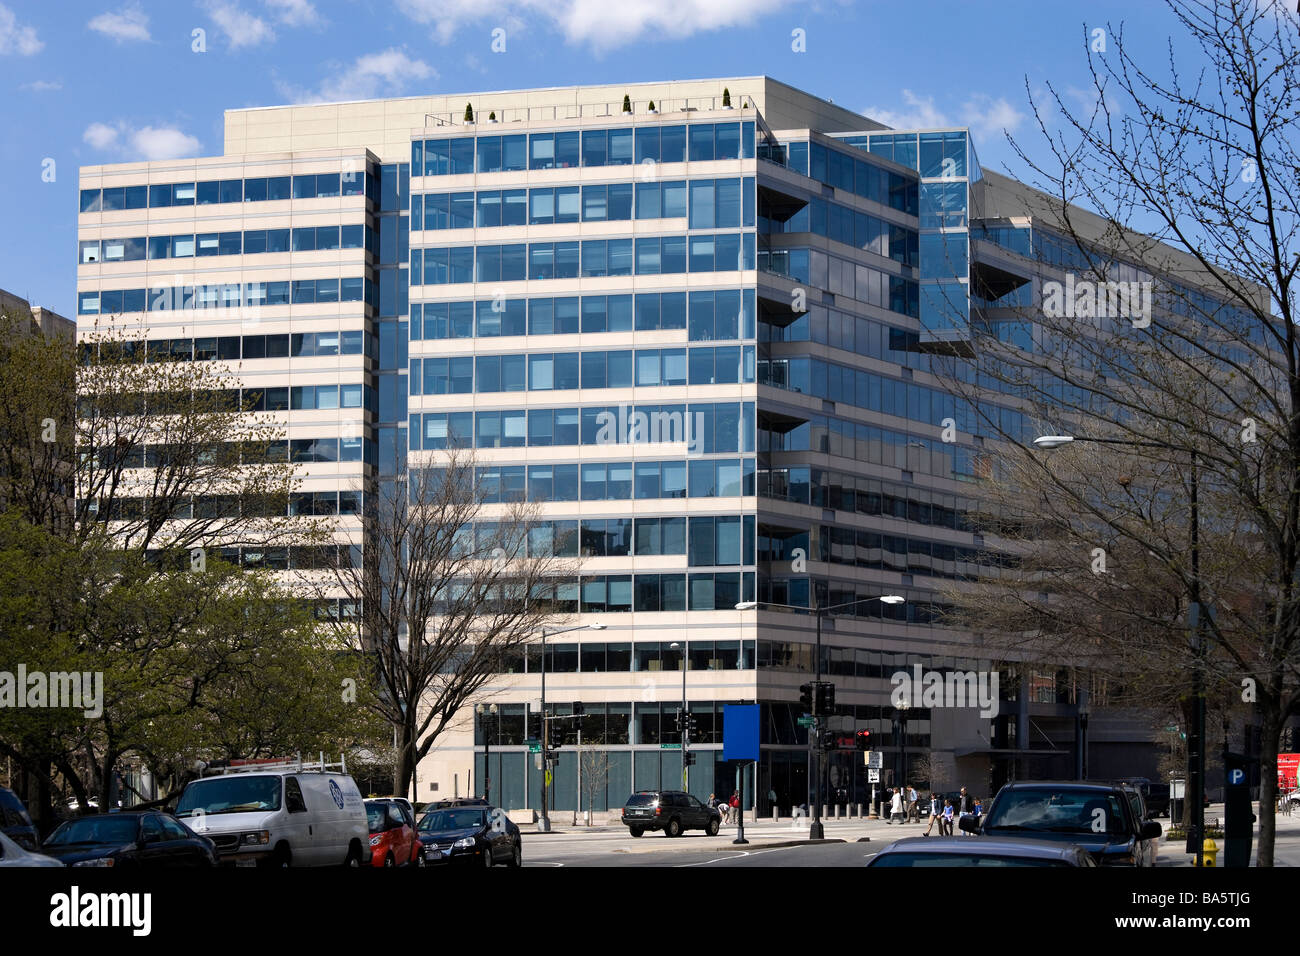 Imf international monetary fund headquarters 2 office on imf international monetary fund headquarters 2 office on pennsylvania avenue 19 st washington dc us usa sciox Images